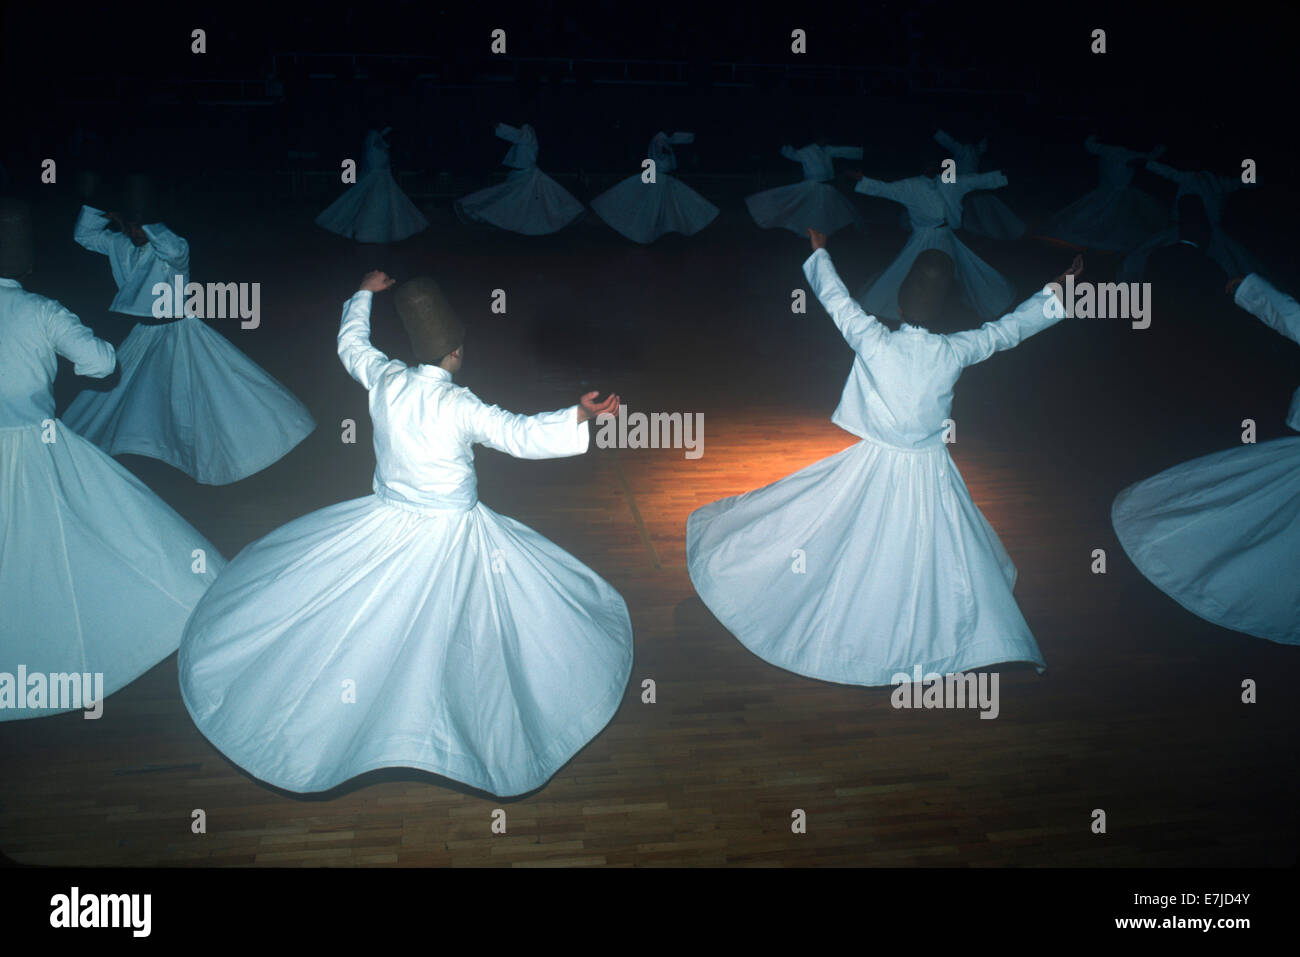 Whirling Dervishes, Konya, Turkey - Stock Image